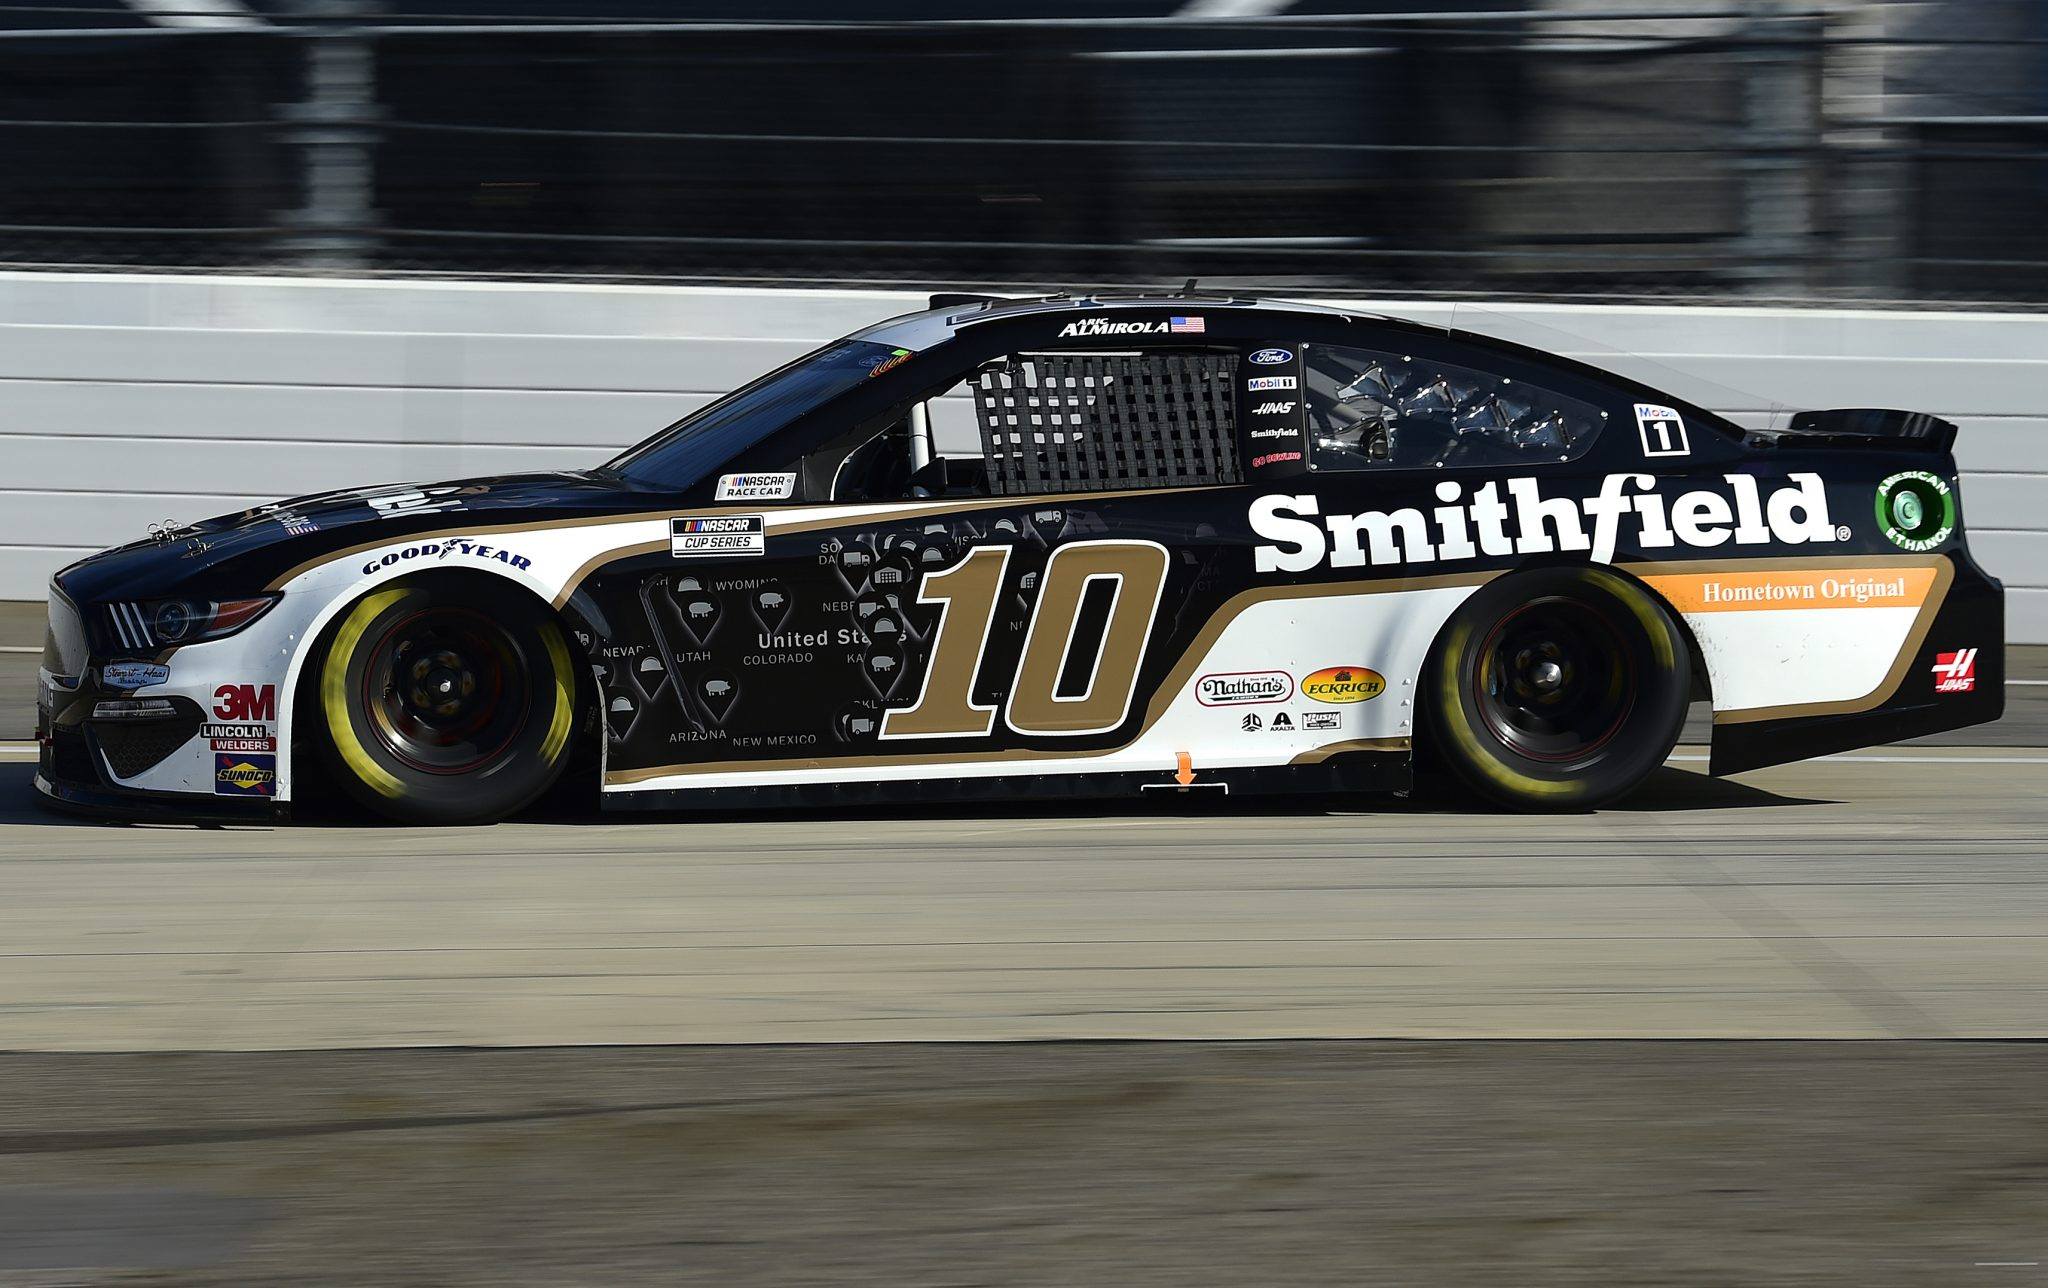 MARTINSVILLE, VIRGINIA - NOVEMBER 01: Aric Almirola, driver of the #10 Smithfield Hometown Original Ford, drives during the NASCAR Cup Series Xfinity 500 at Martinsville Speedway on November 01, 2020 in Martinsville, Virginia. (Photo by Jared C. Tilton/Getty Images) | Getty Images